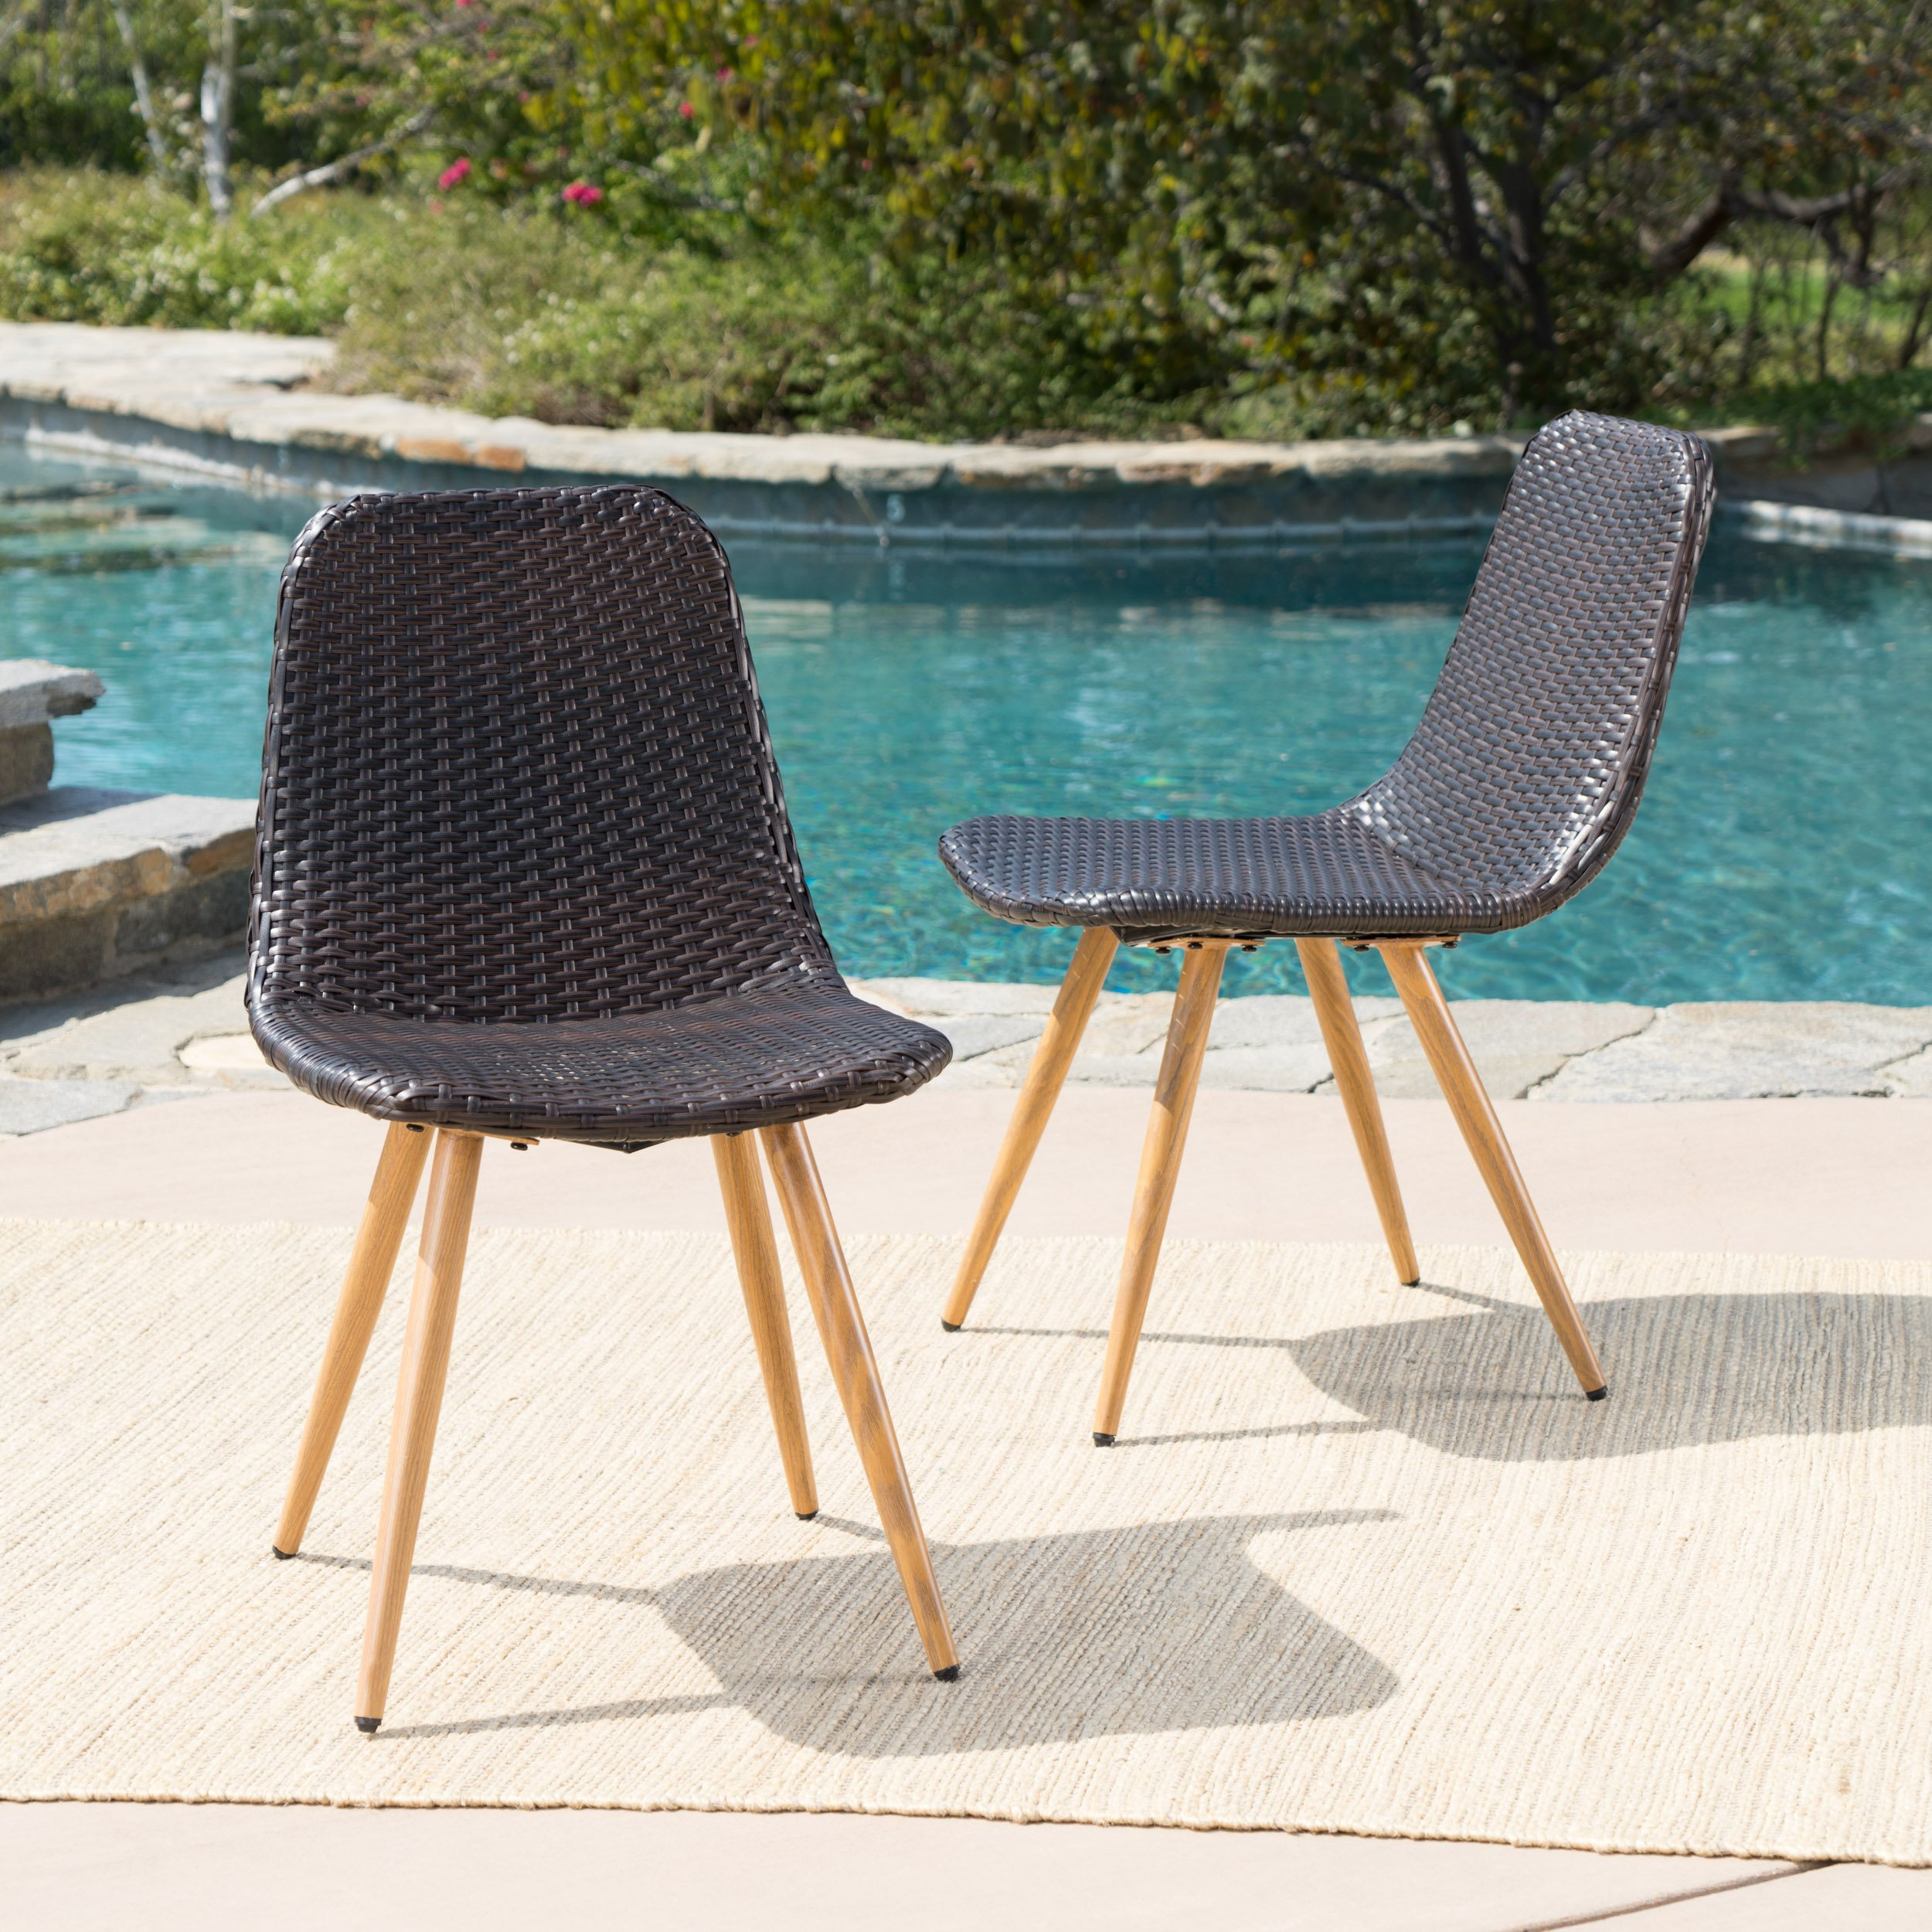 Rattan Chair Metal Legs: Gilda Outdoor Multi-Brown Wicker Dining Chairs With Light